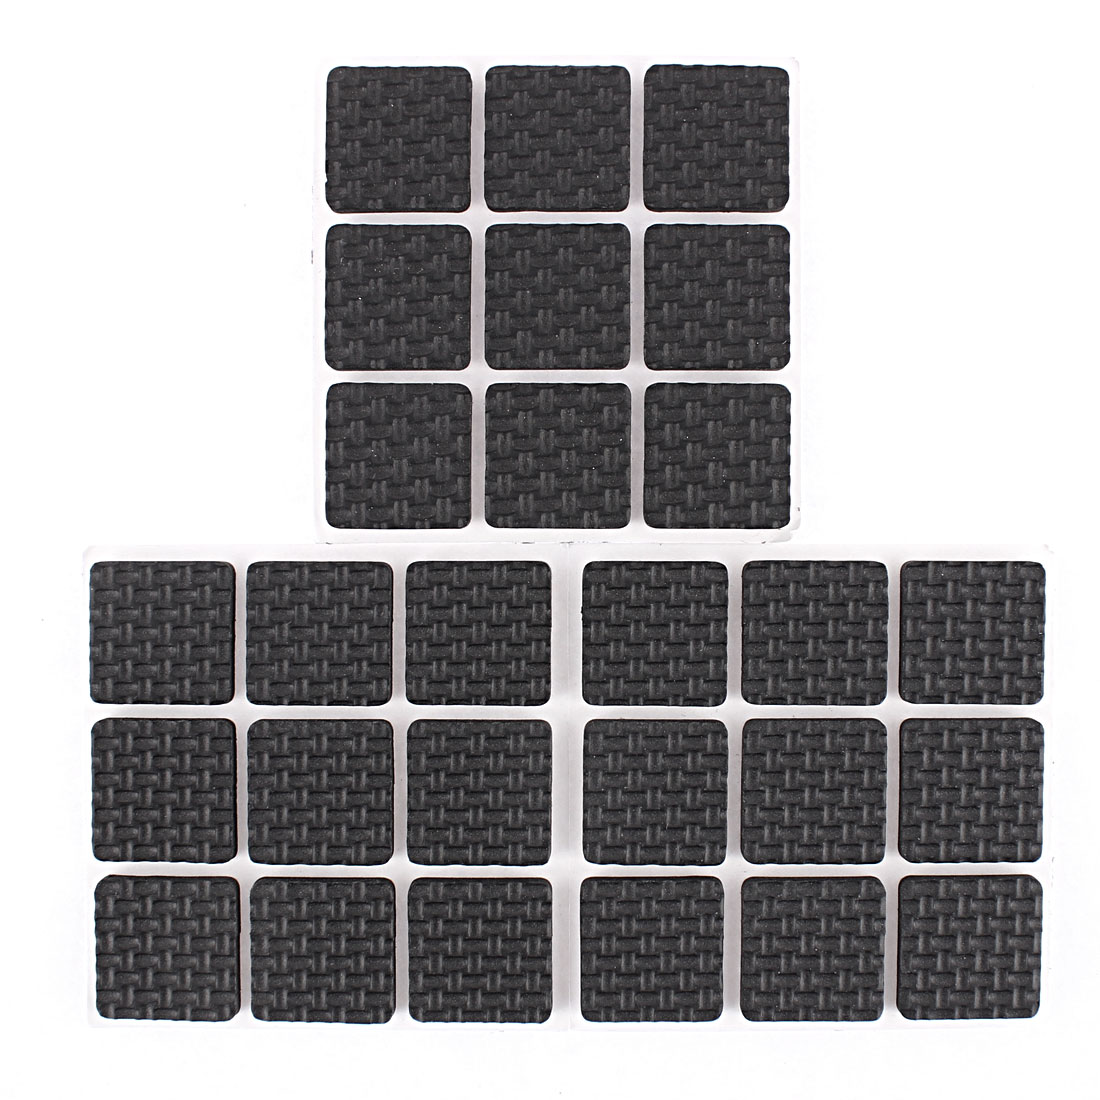 Self-adhesive Square Shape Furniture Protection Cushion Pads Mat 27pcs